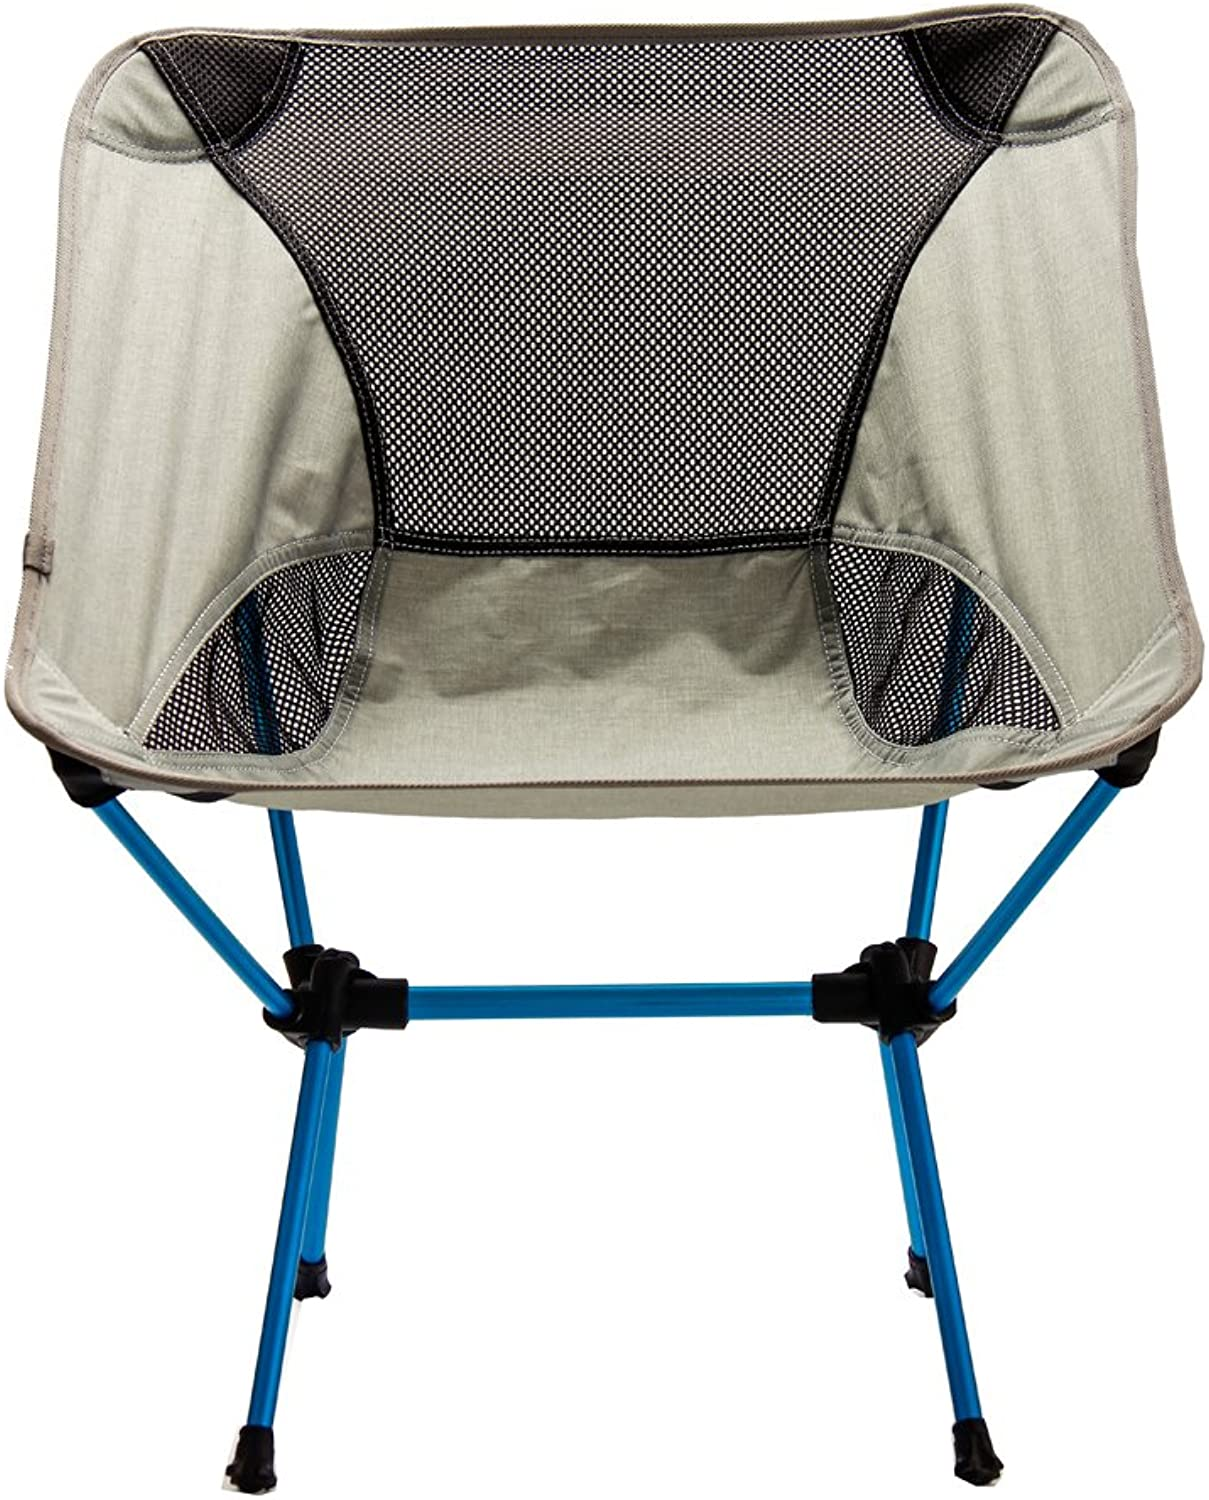 QETU Camping Folding Chair Outdoor Portable Chair Aviation Aluminum Alloy Fishing Chair Ultralight Moon Chair